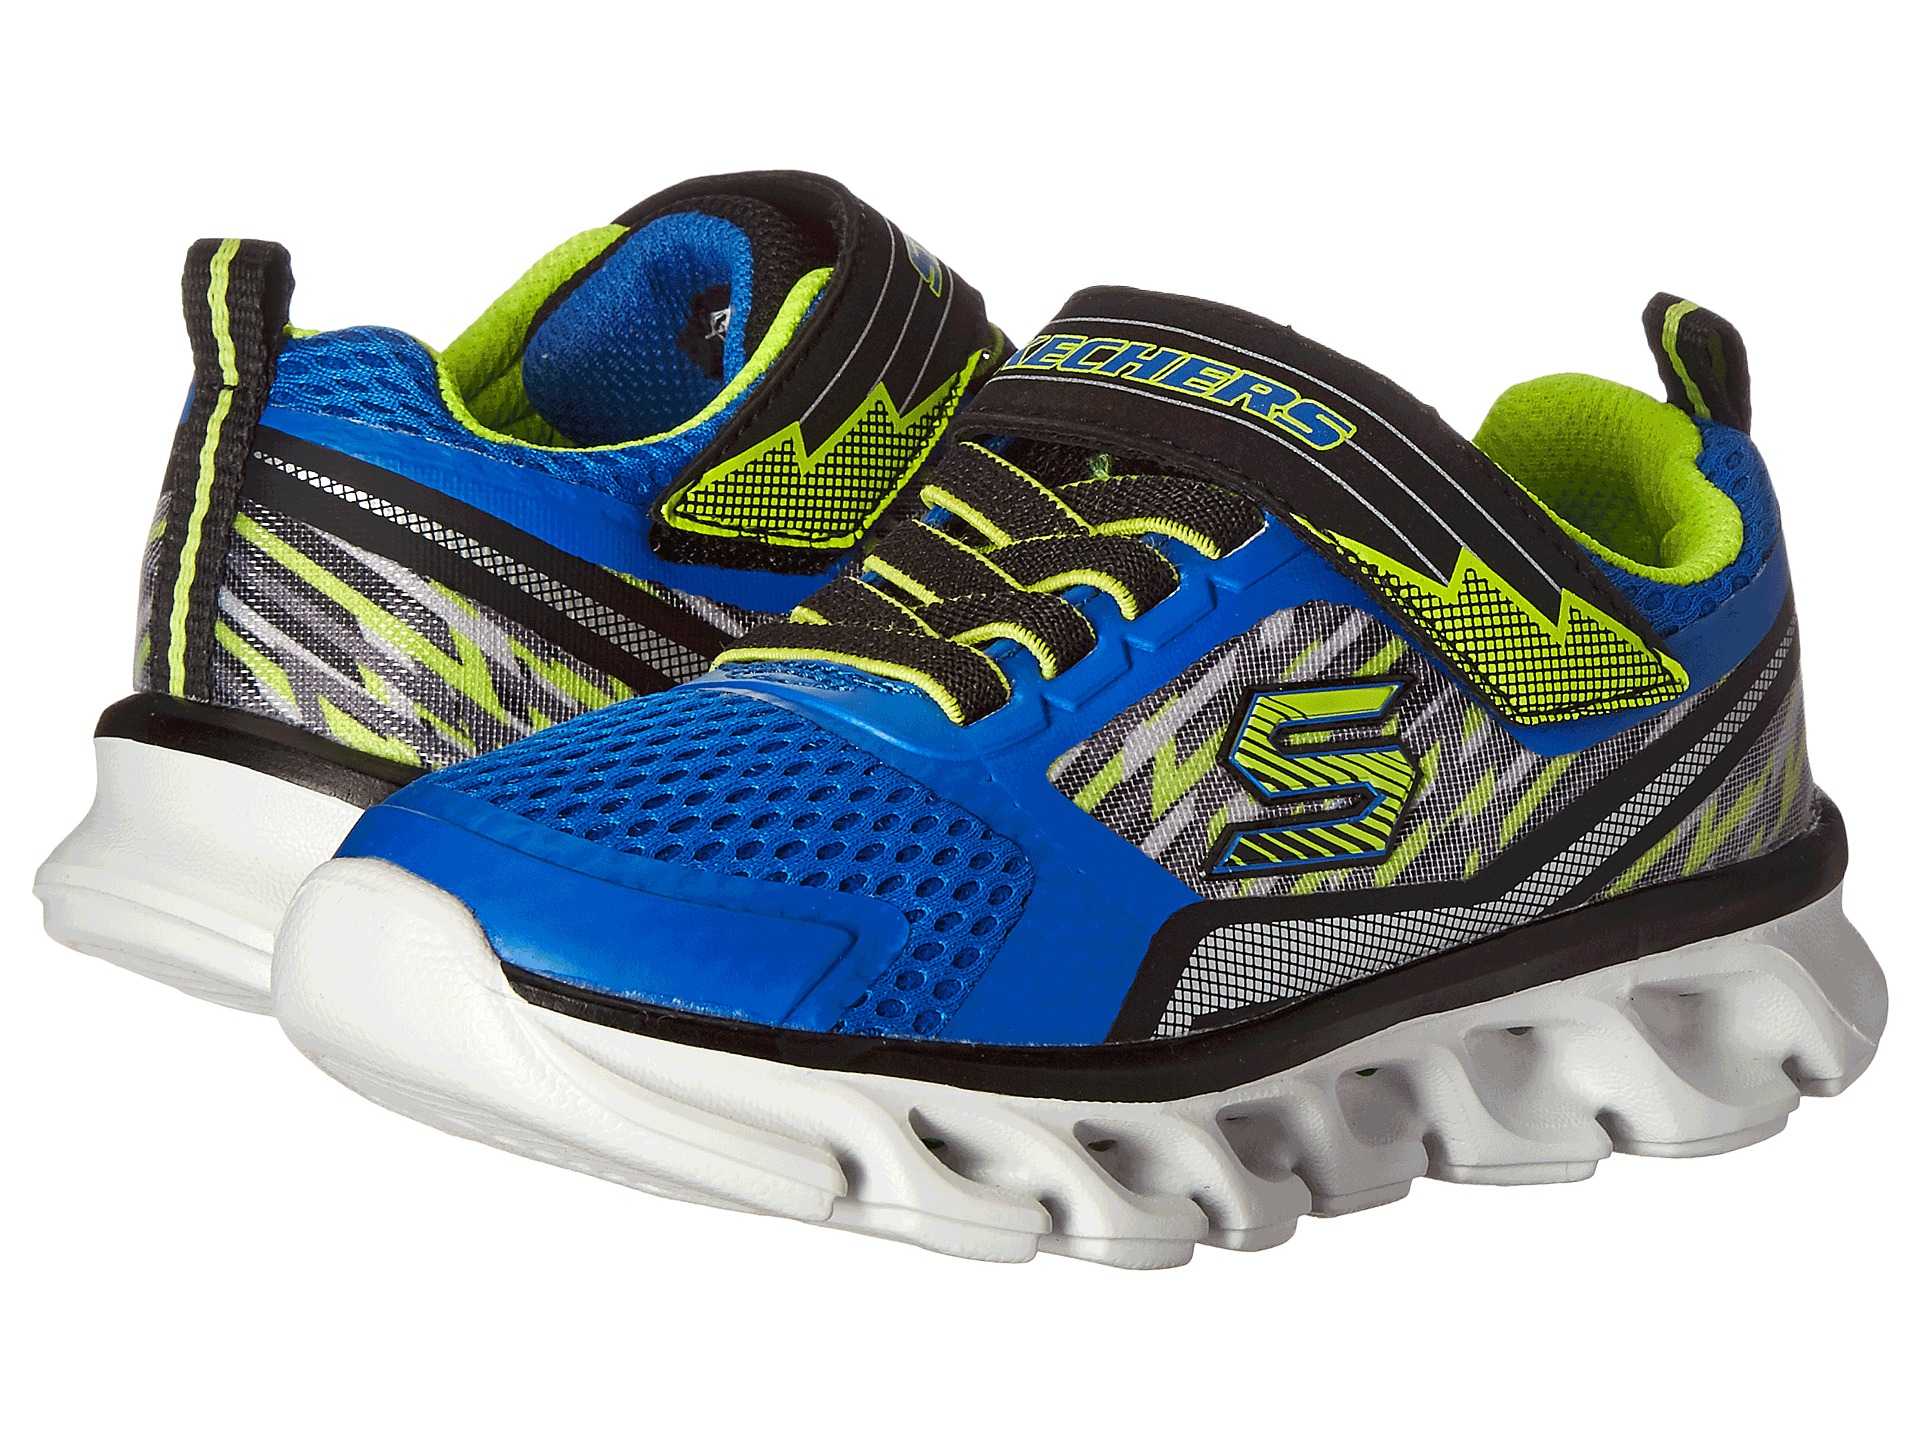 Sign up for new styles from SKECHERS KIDS